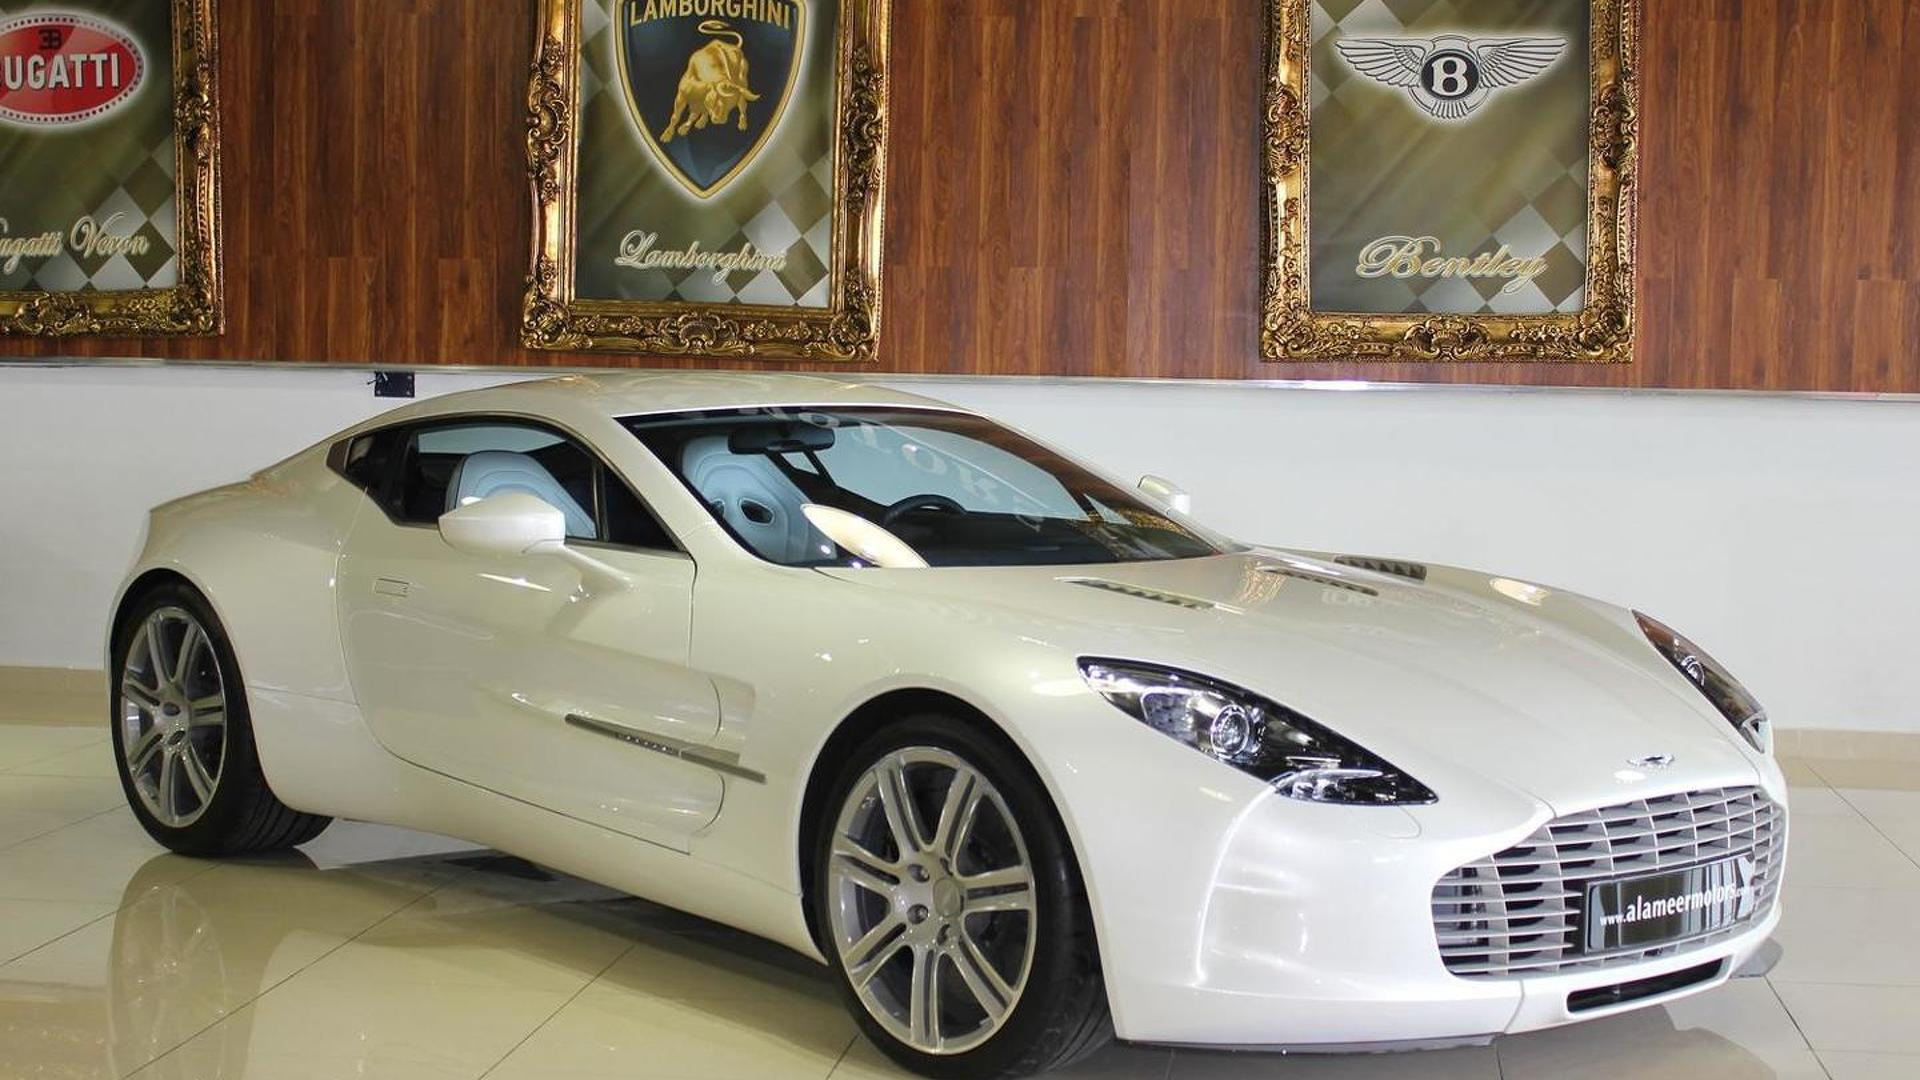 Aston Martin One-77 For Sale >> Brand New Aston Martin One 77 On Sale For 2 Million